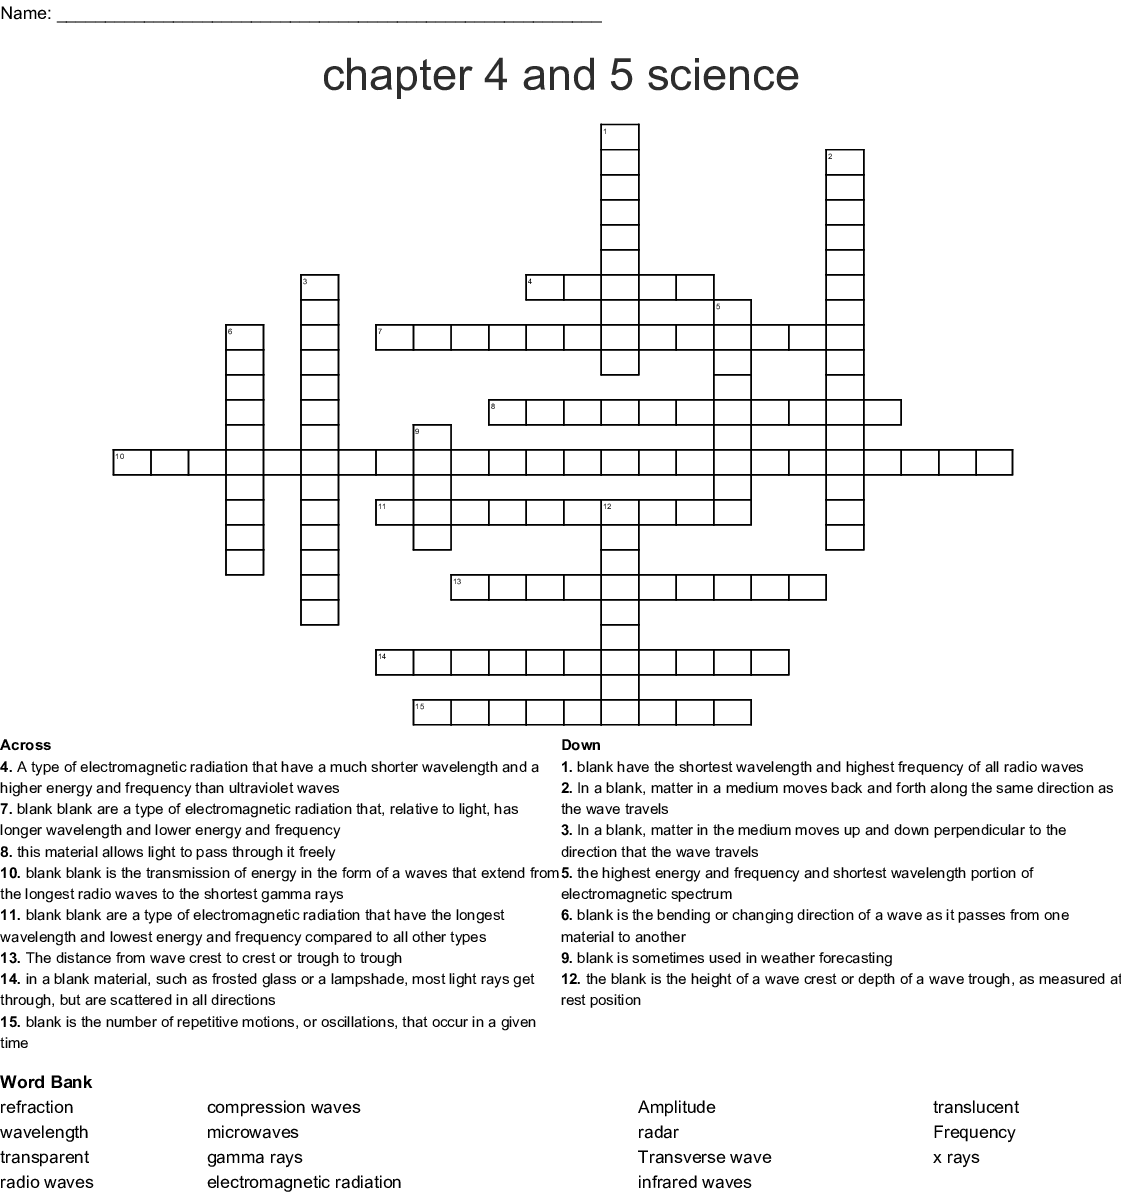 Chapter 4 And 5 Science Crossword